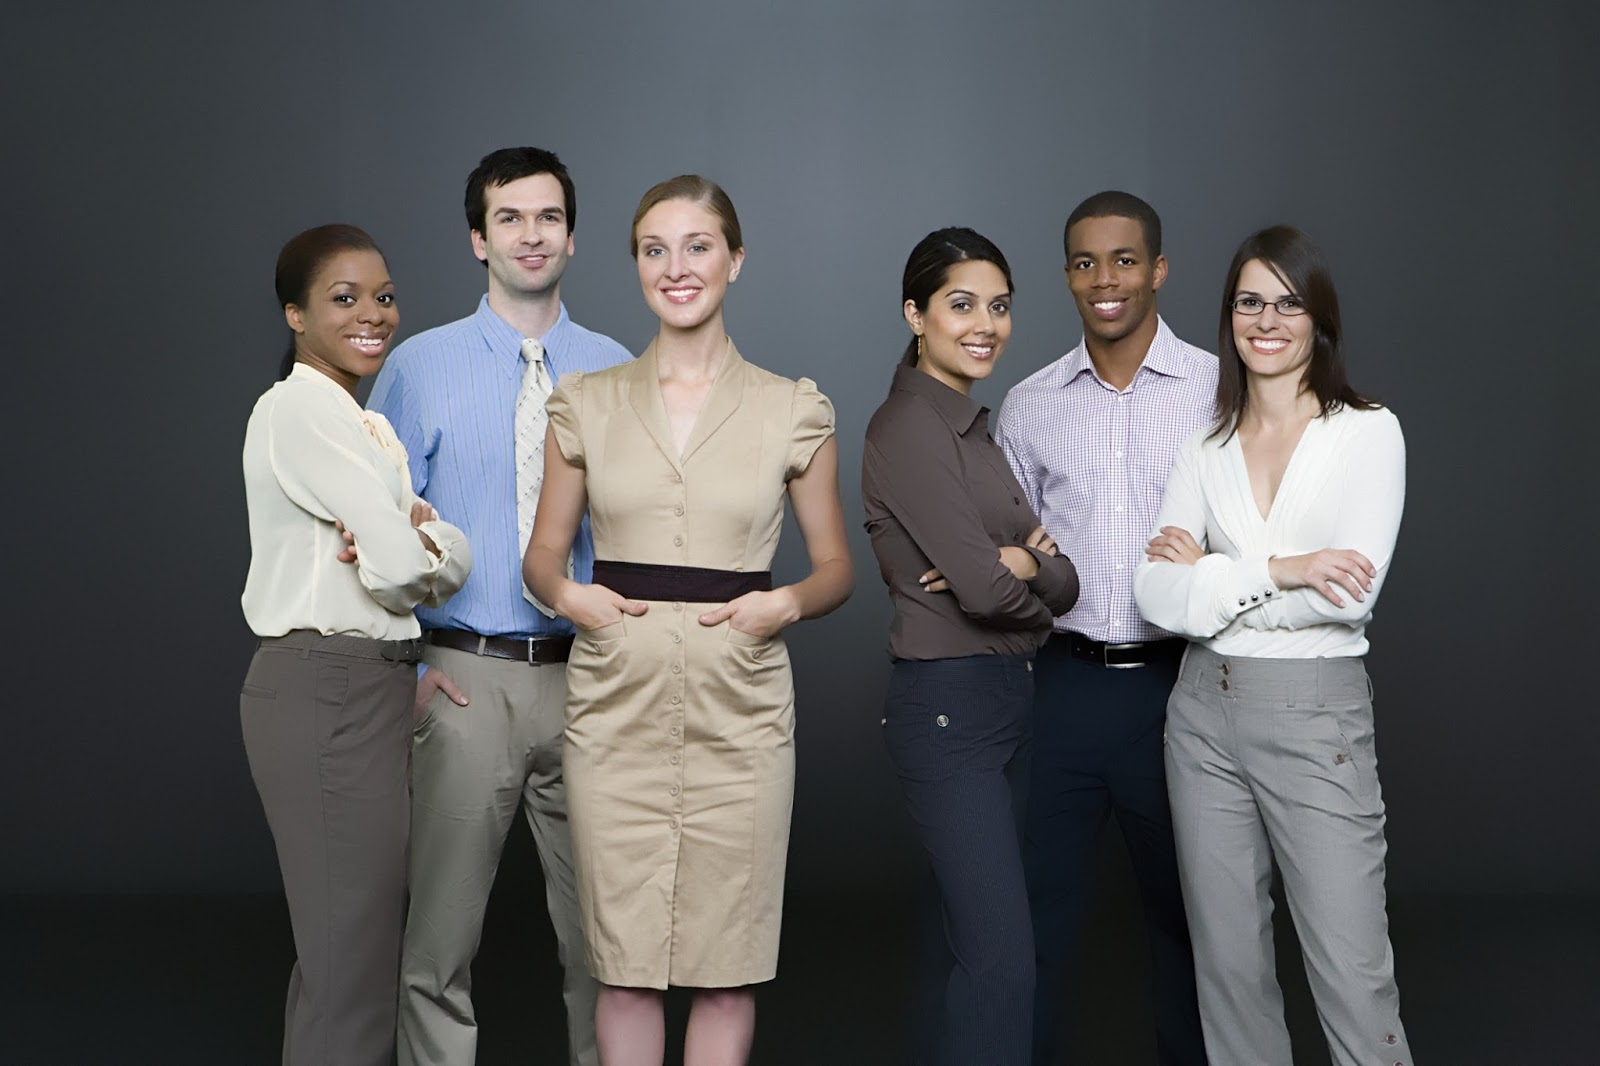 Diversity for Groups & Teams in the Workplace